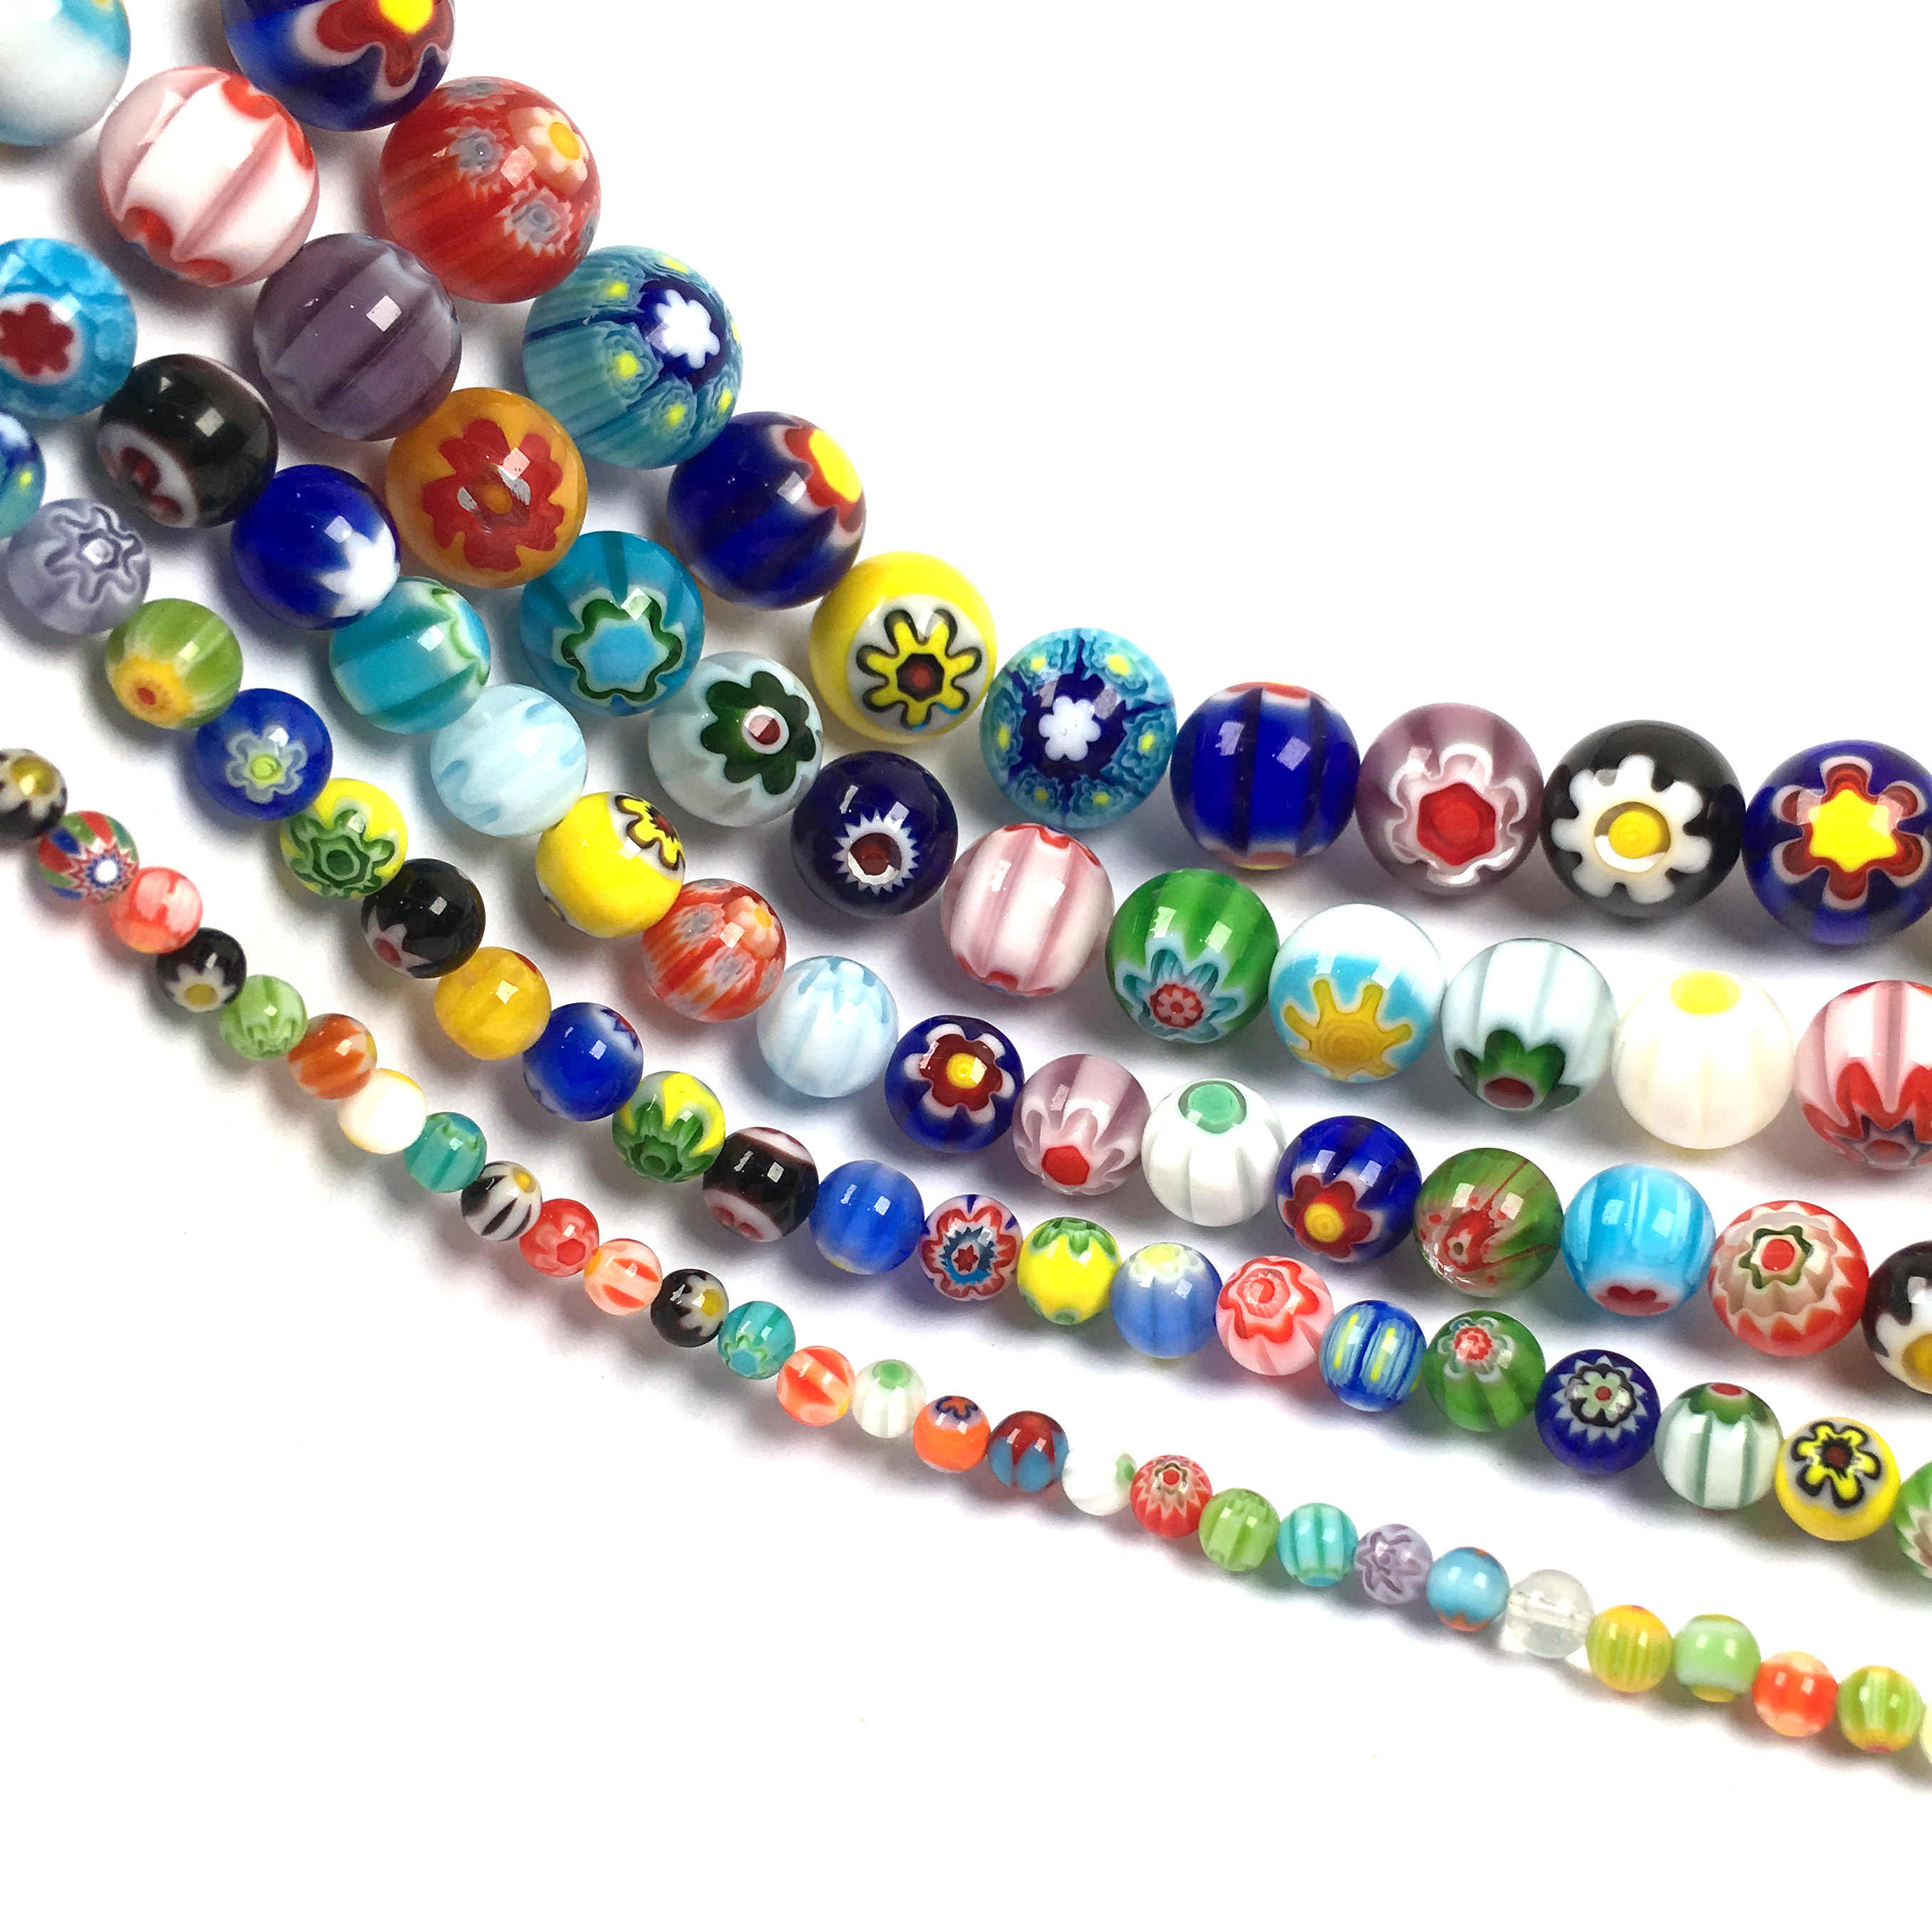 Wholesale Glass Beads Round Painting Flower Stone Beads for Jewelry Making Diy Glass Bracelets Necklace Jewelry 4/6/8/10mm 38cm